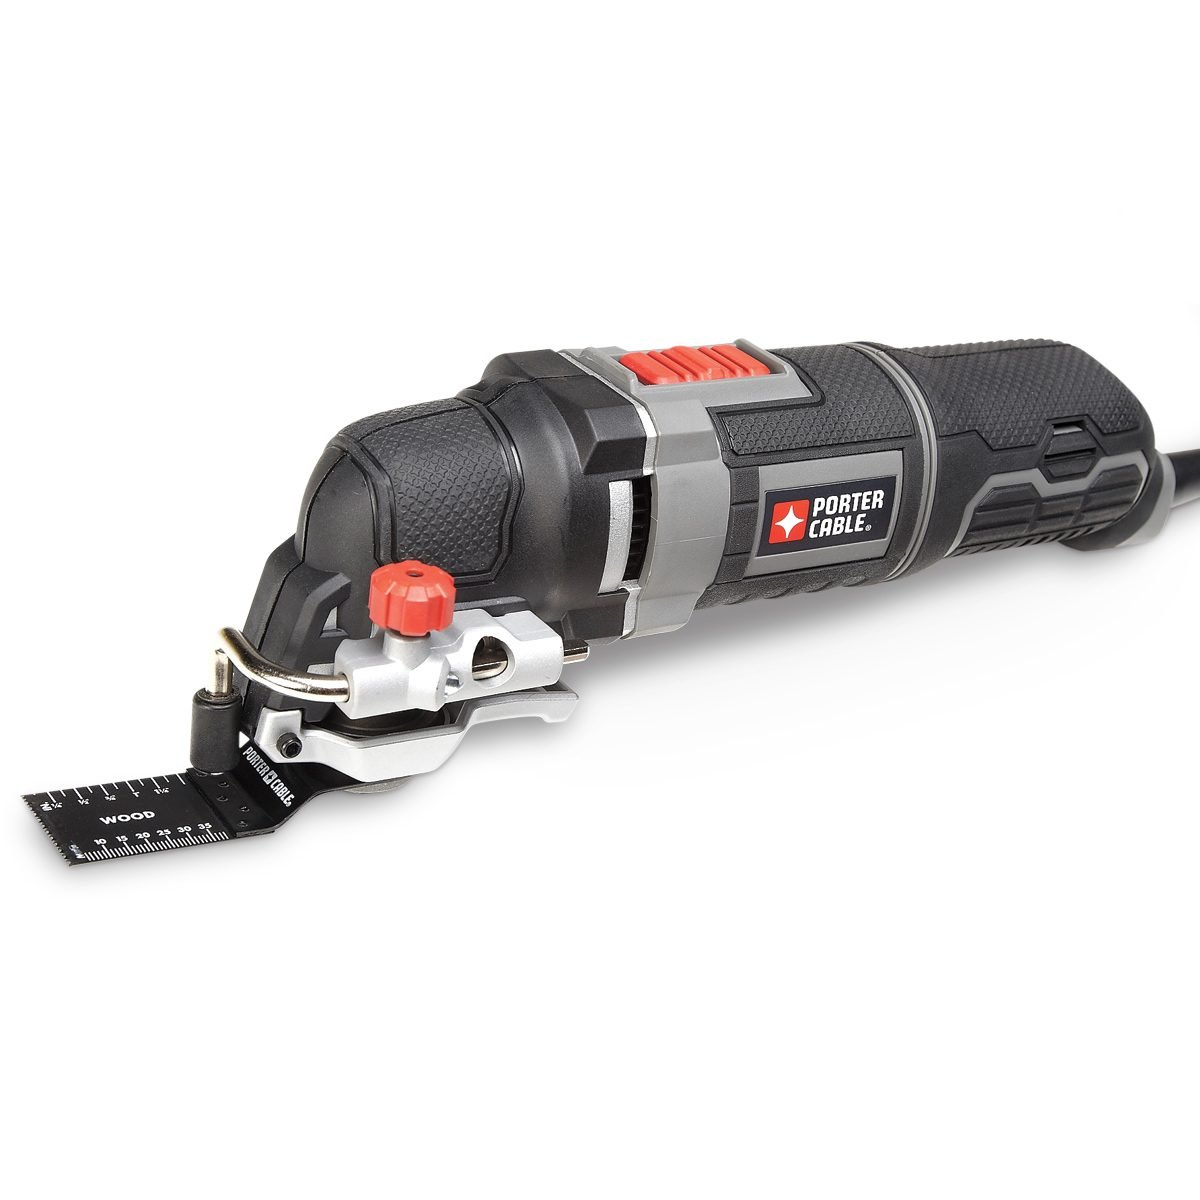 Oscillating Tool Reviews: Learn How to Find the Best